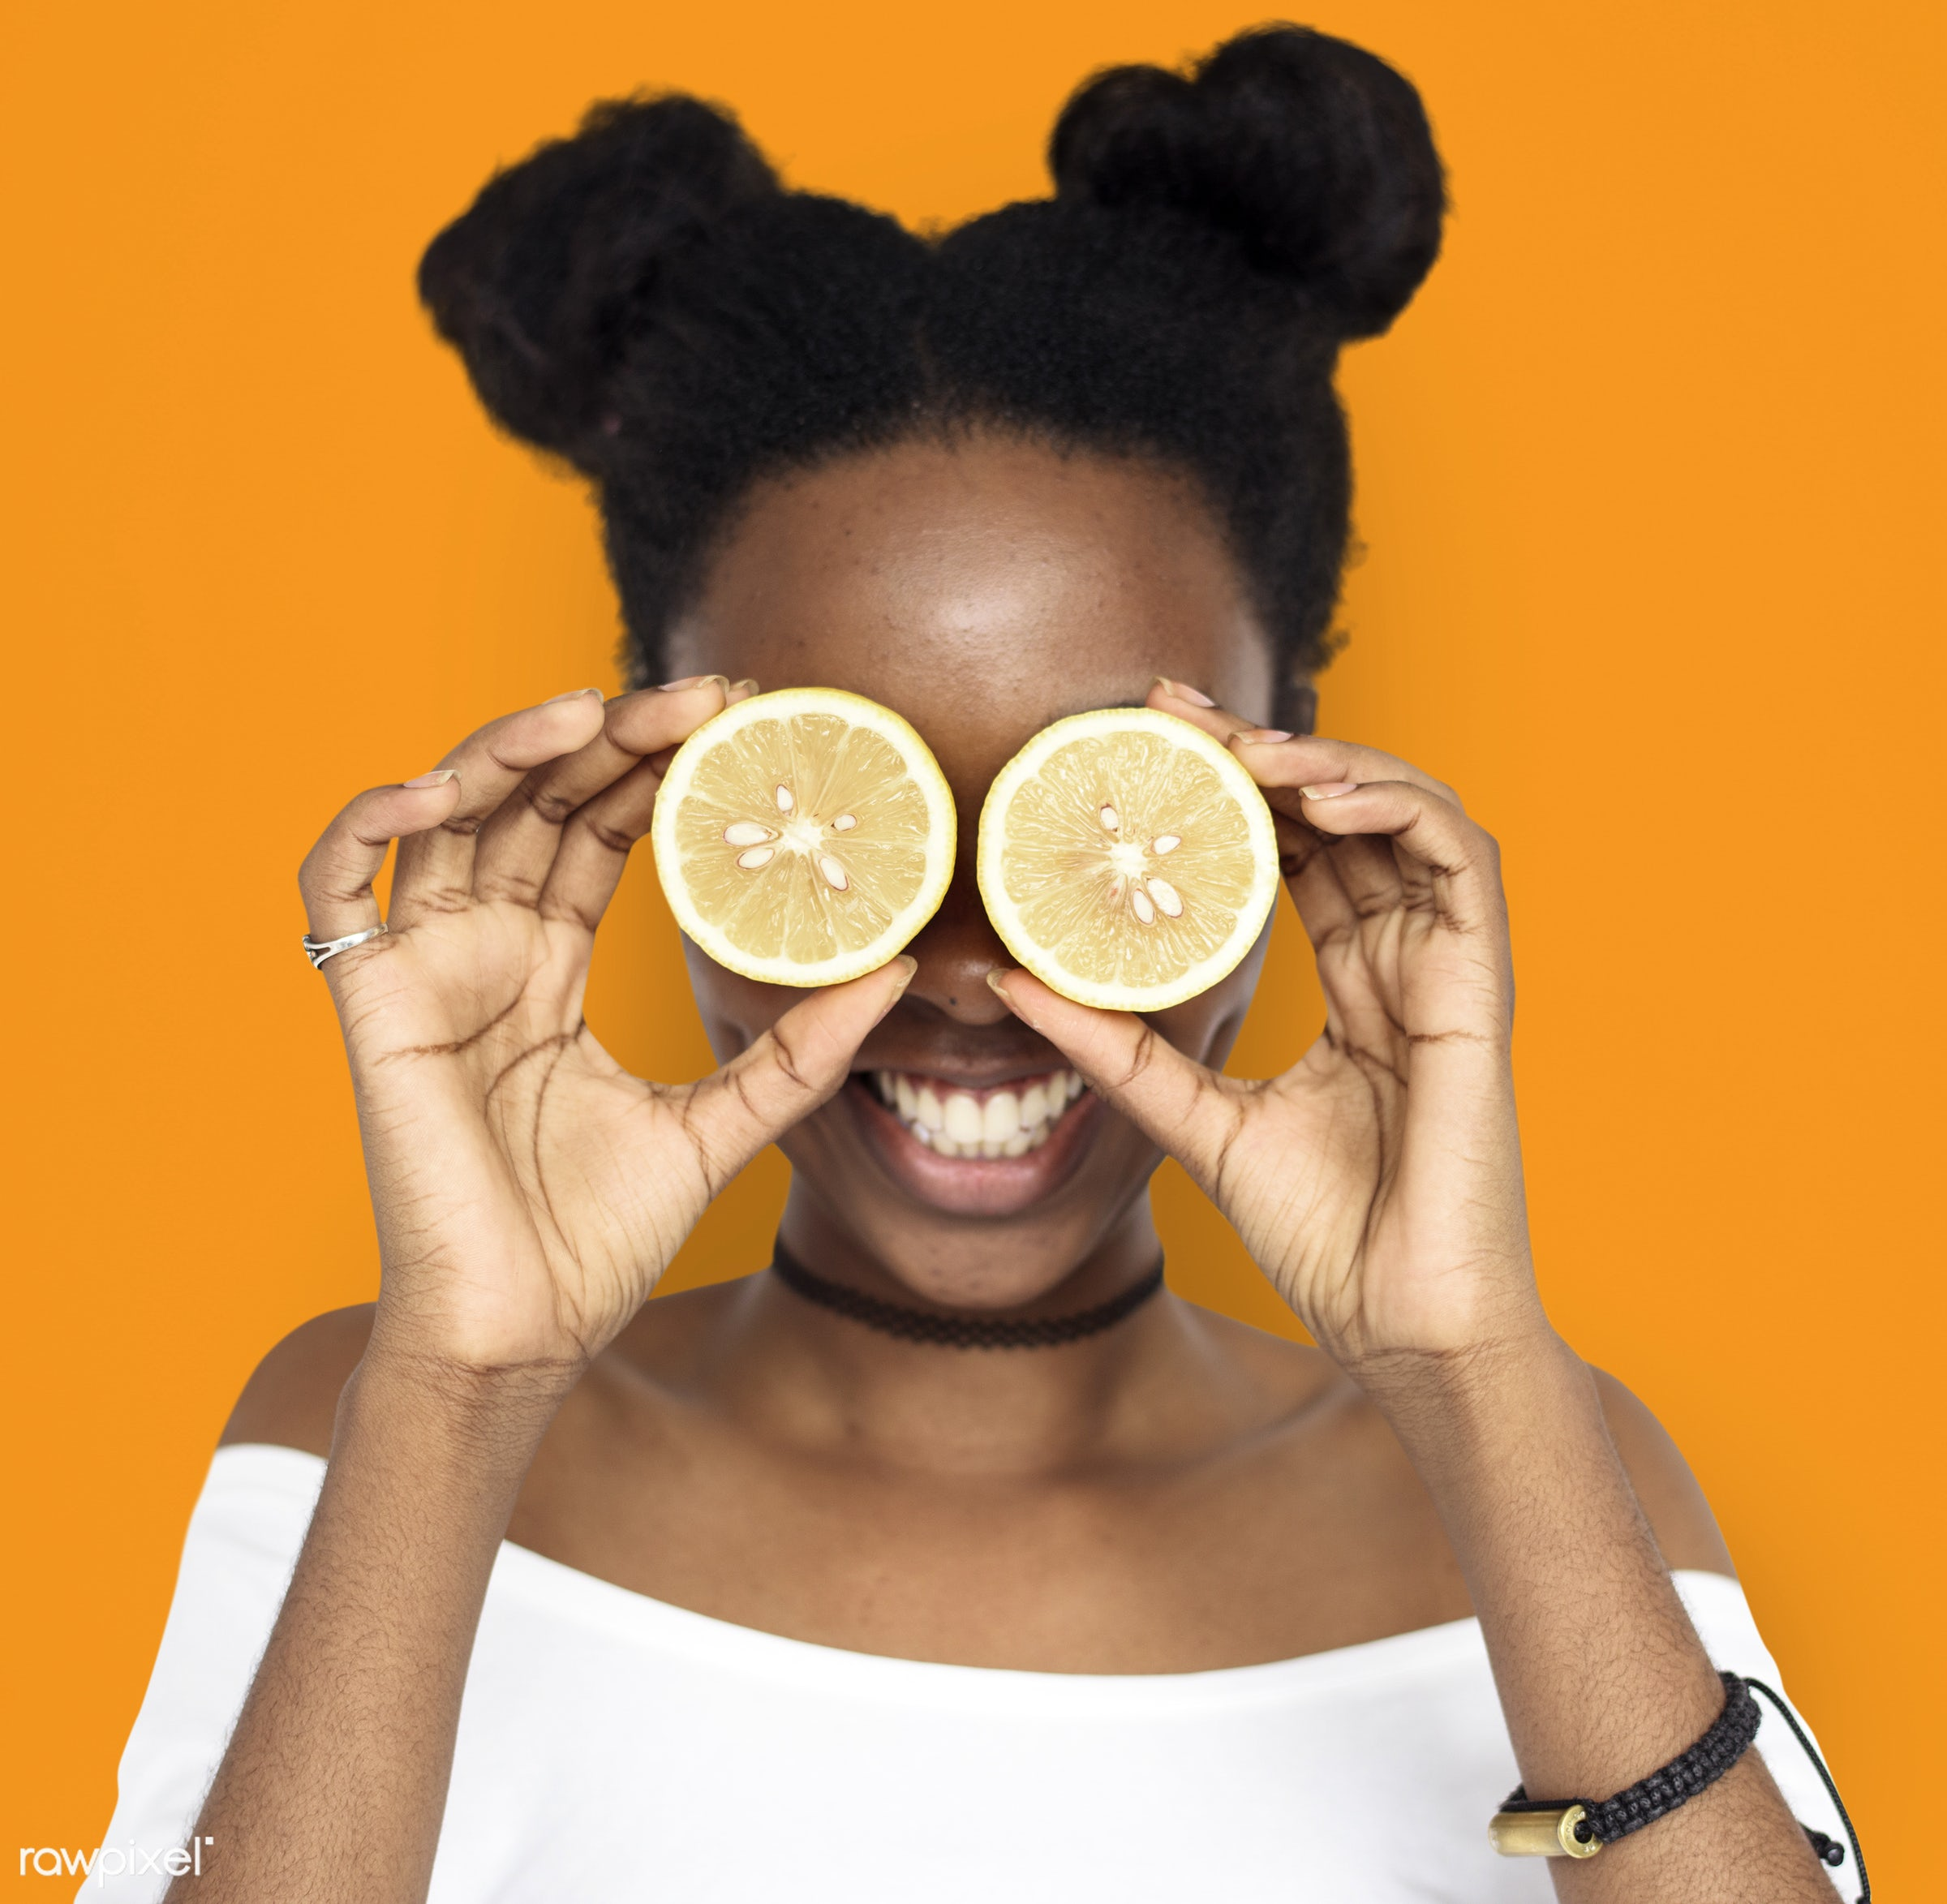 studio, expression, person, people, eyes, cover, woman, cheerful, smiling, black, isolated, orange, fruit, african descent,...